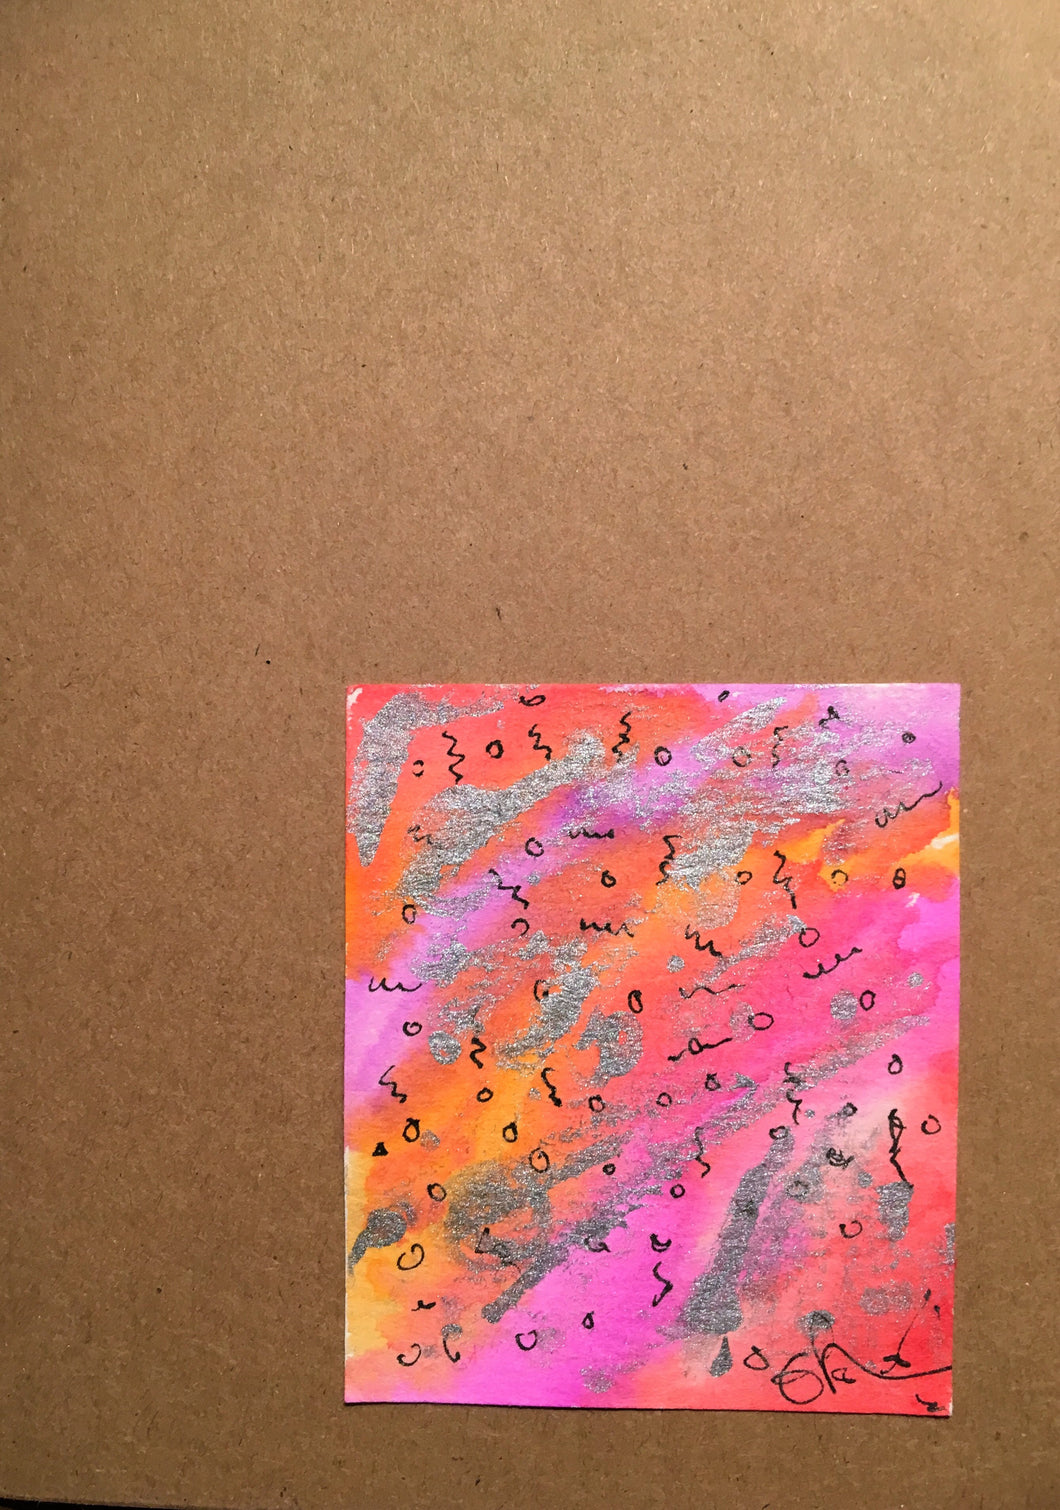 Handpainted Watercolour Greeting Card - Abstract Ink Design with Silver on Pink/Orange/Red - eDgE dEsiGn London